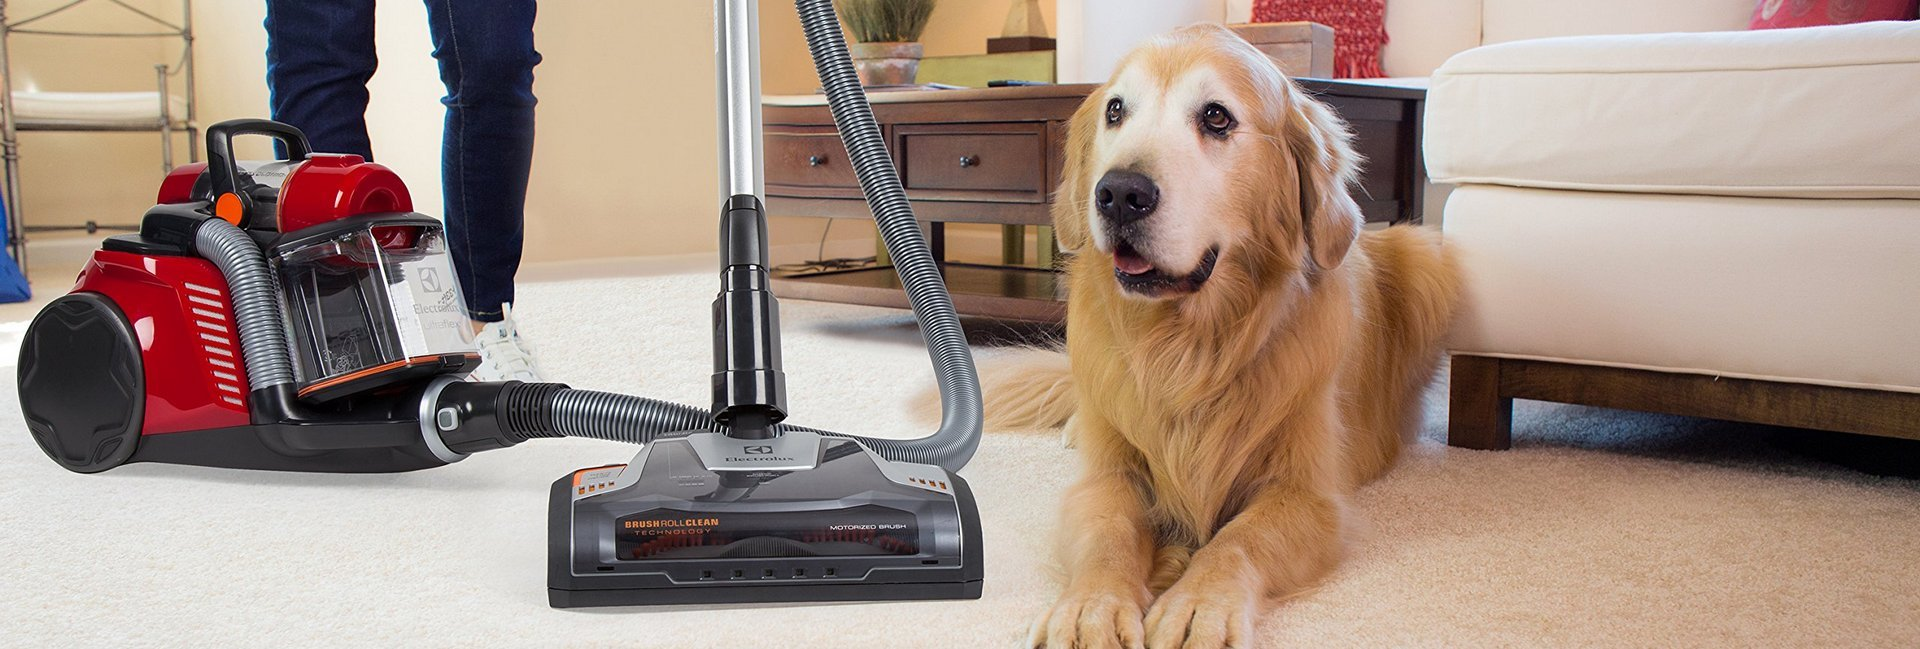 Best Shop Vac For Dog Hair